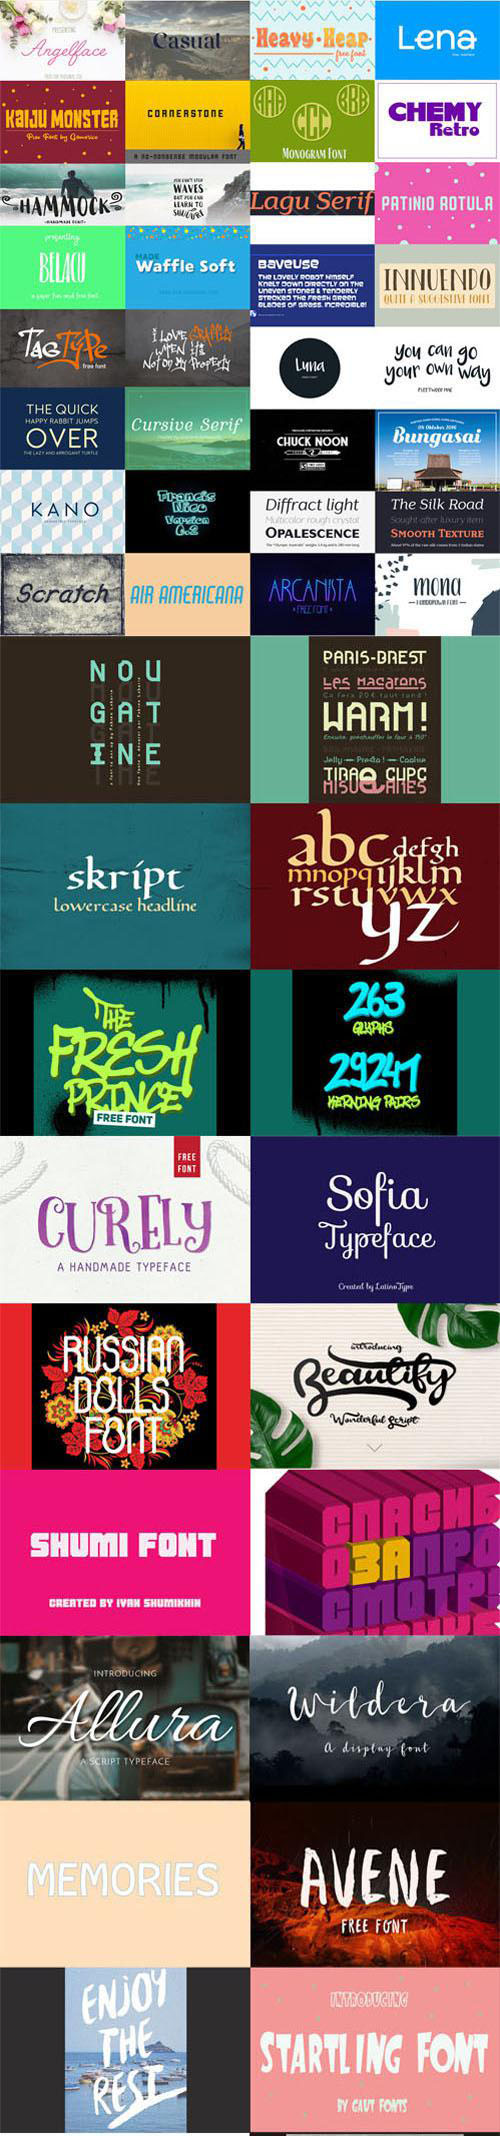 TheHungryJPEG - Best New 46 Fonts Collection